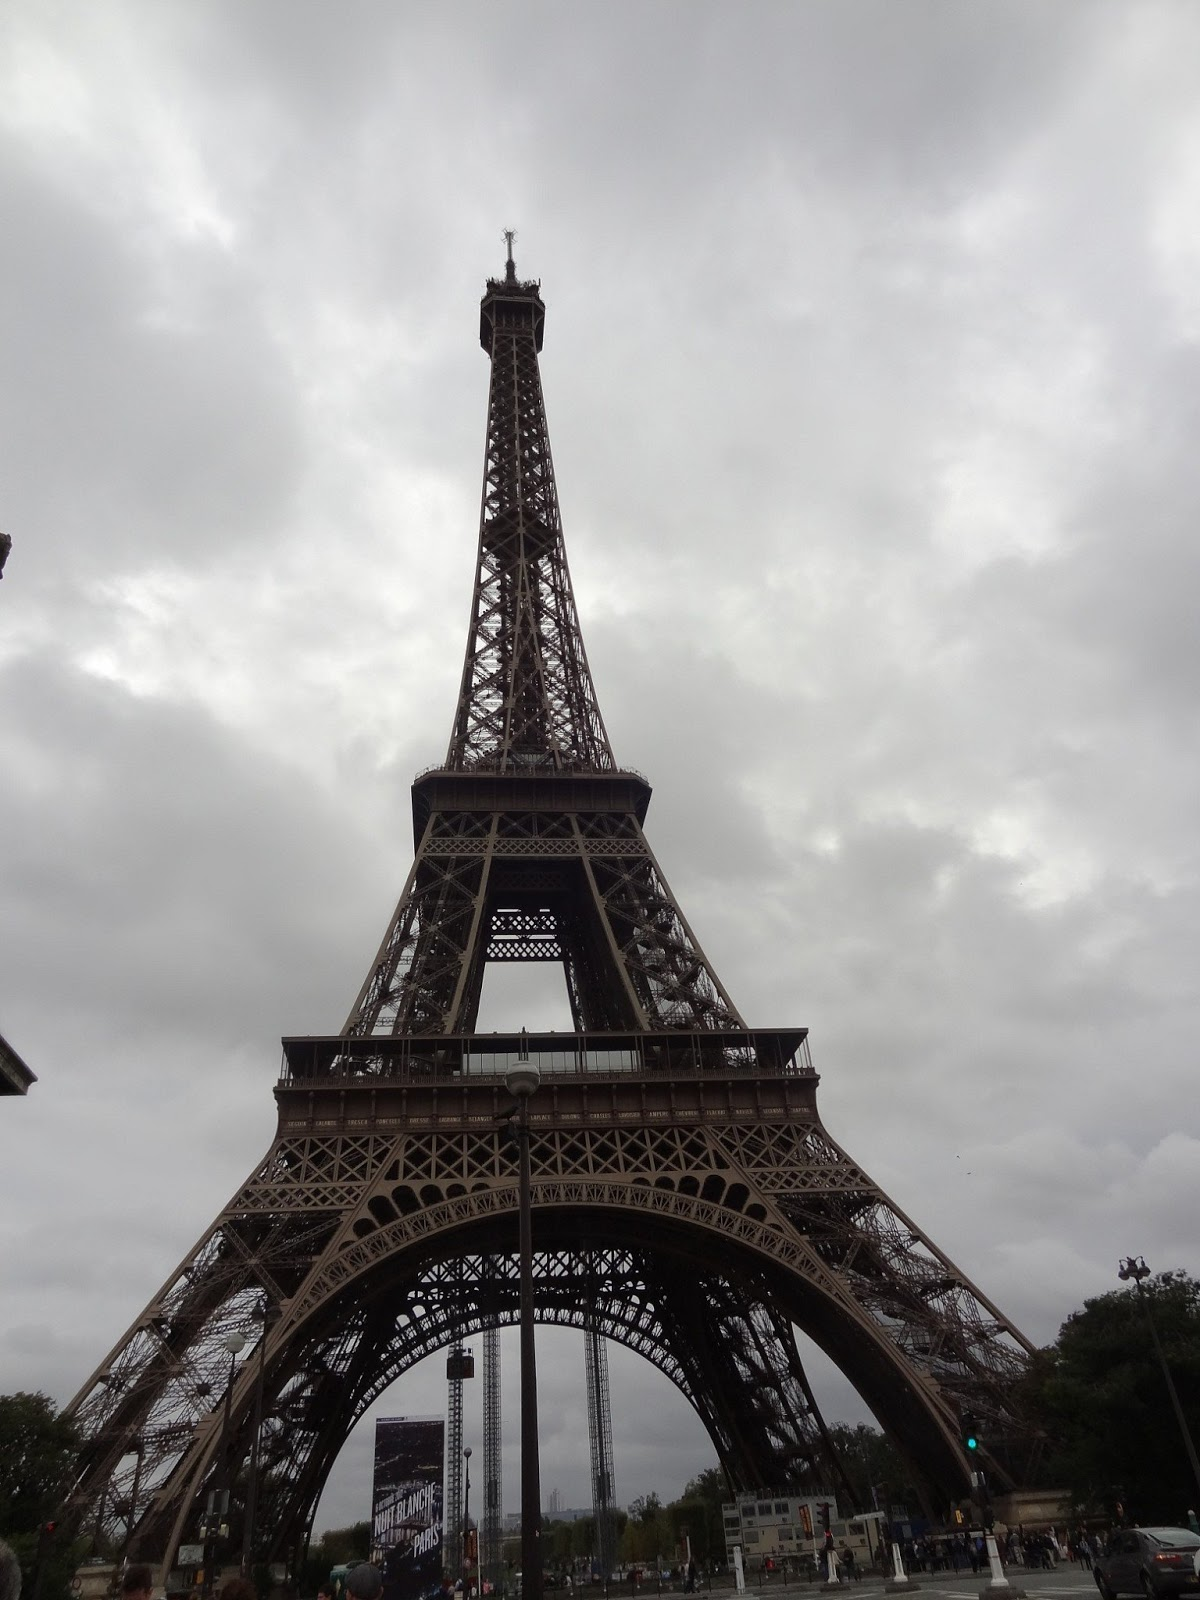 Cheap hotels and transportation in paris travel tips and for Hotels by the eiffel tower